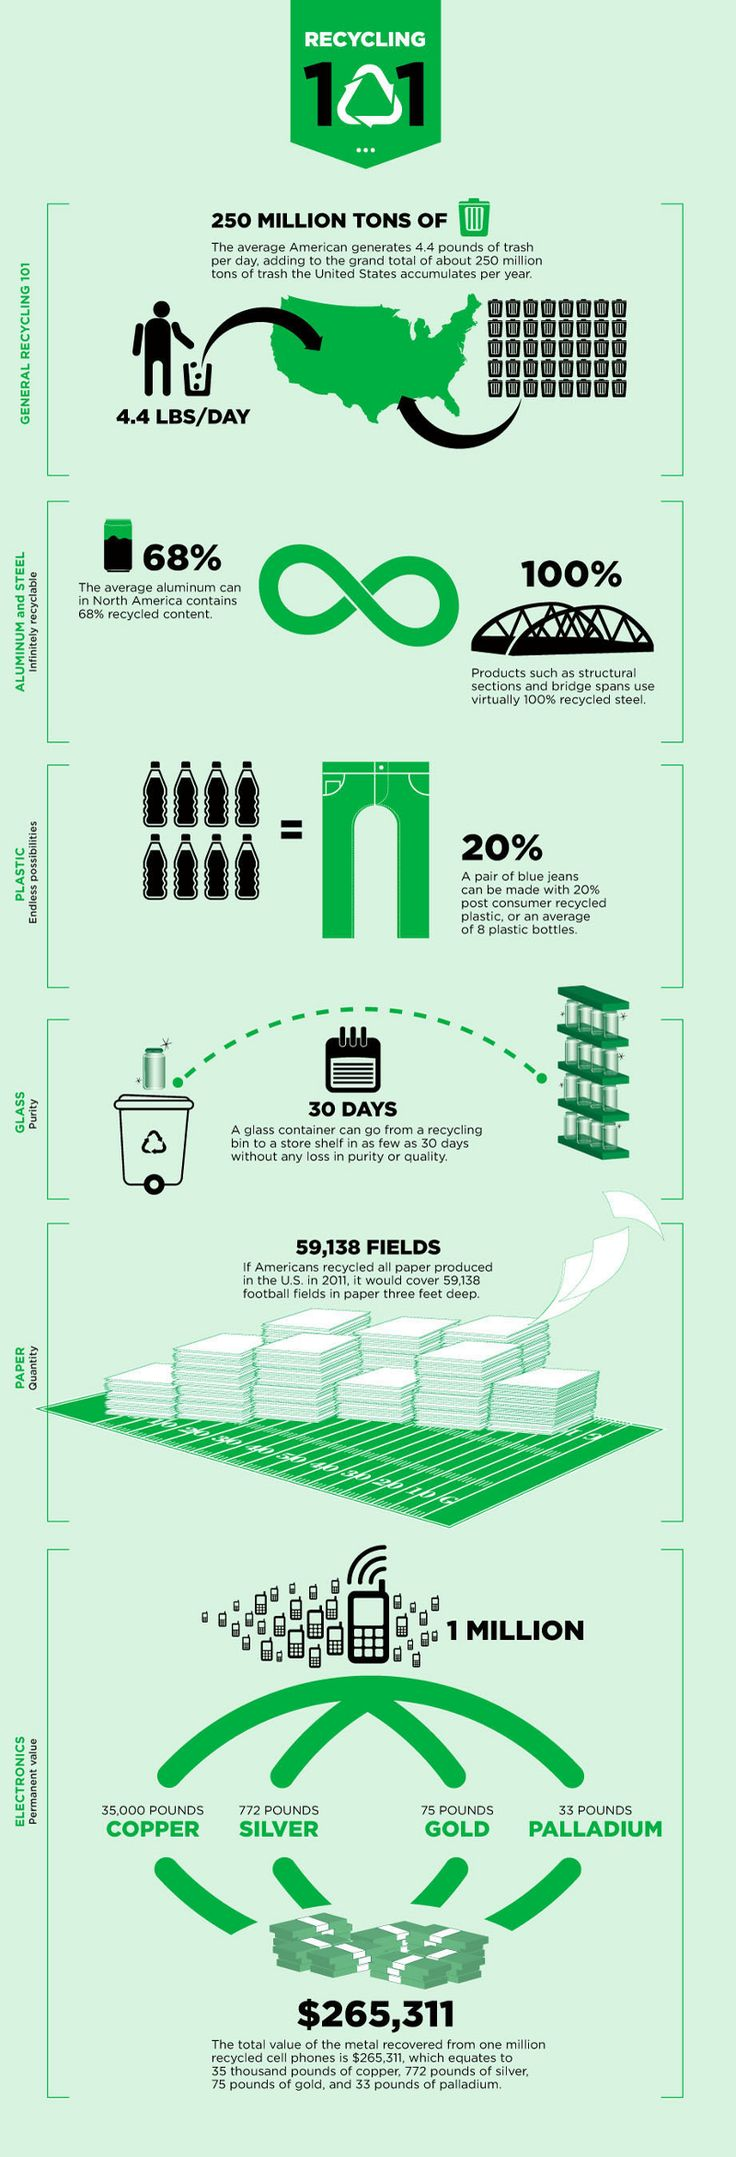 Recycling 101. #infographic #design (View more at www.aldenchong.com)